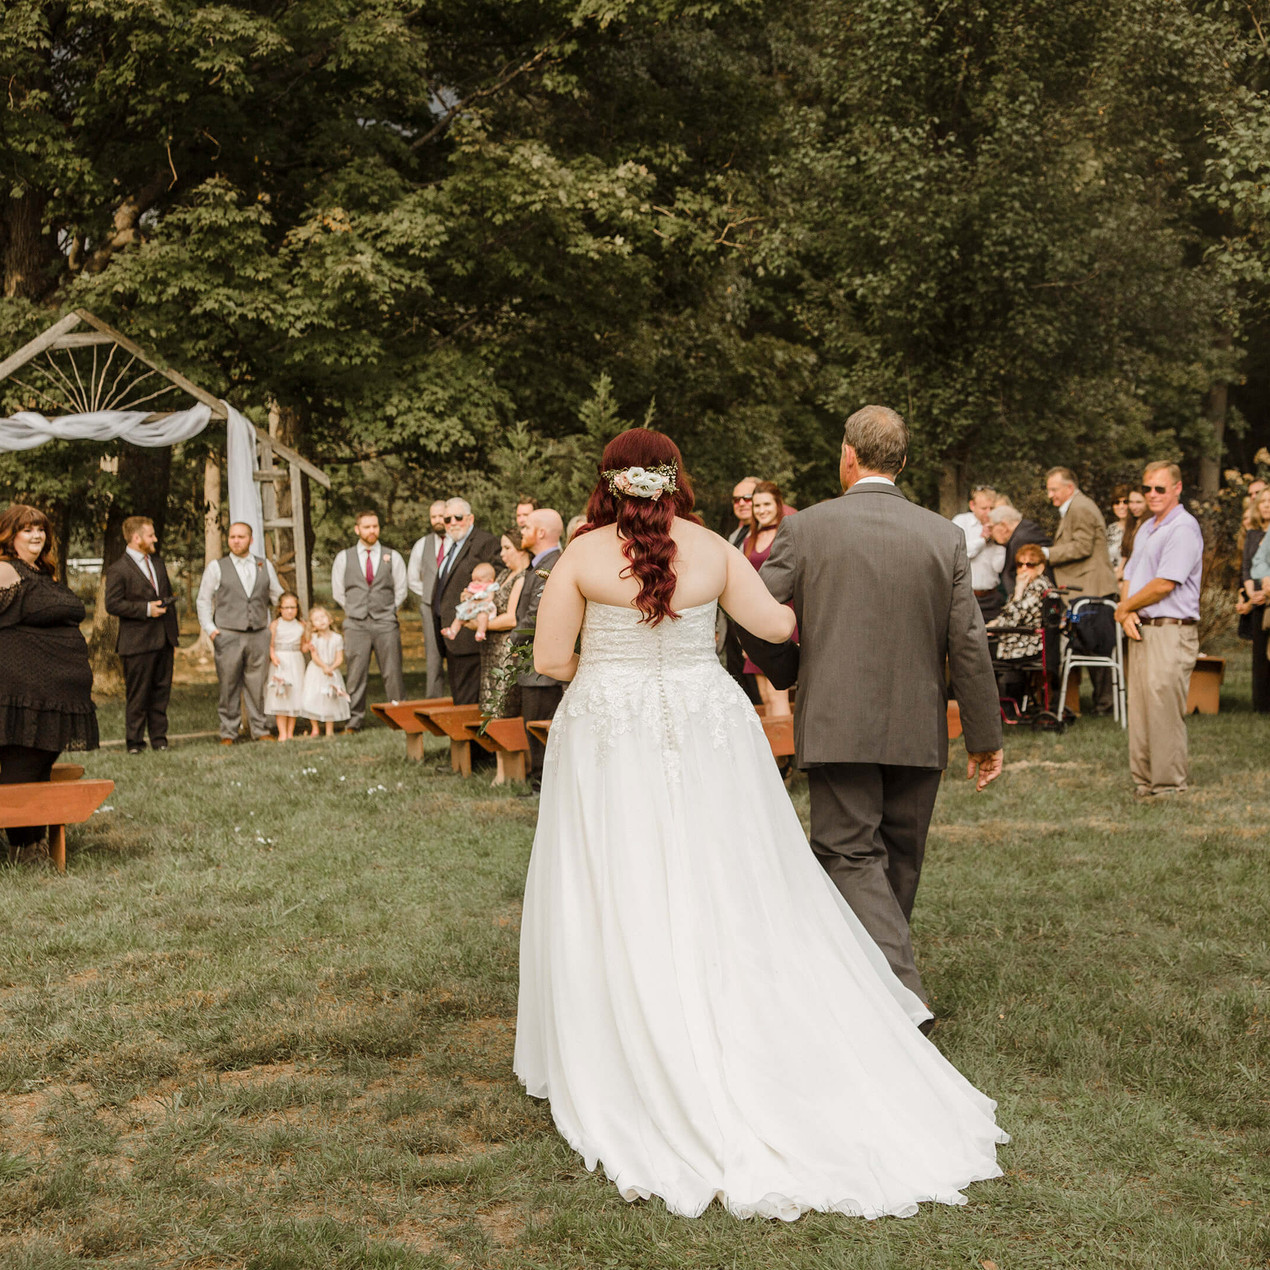 Wedding ceremony at the Marmalade Lily